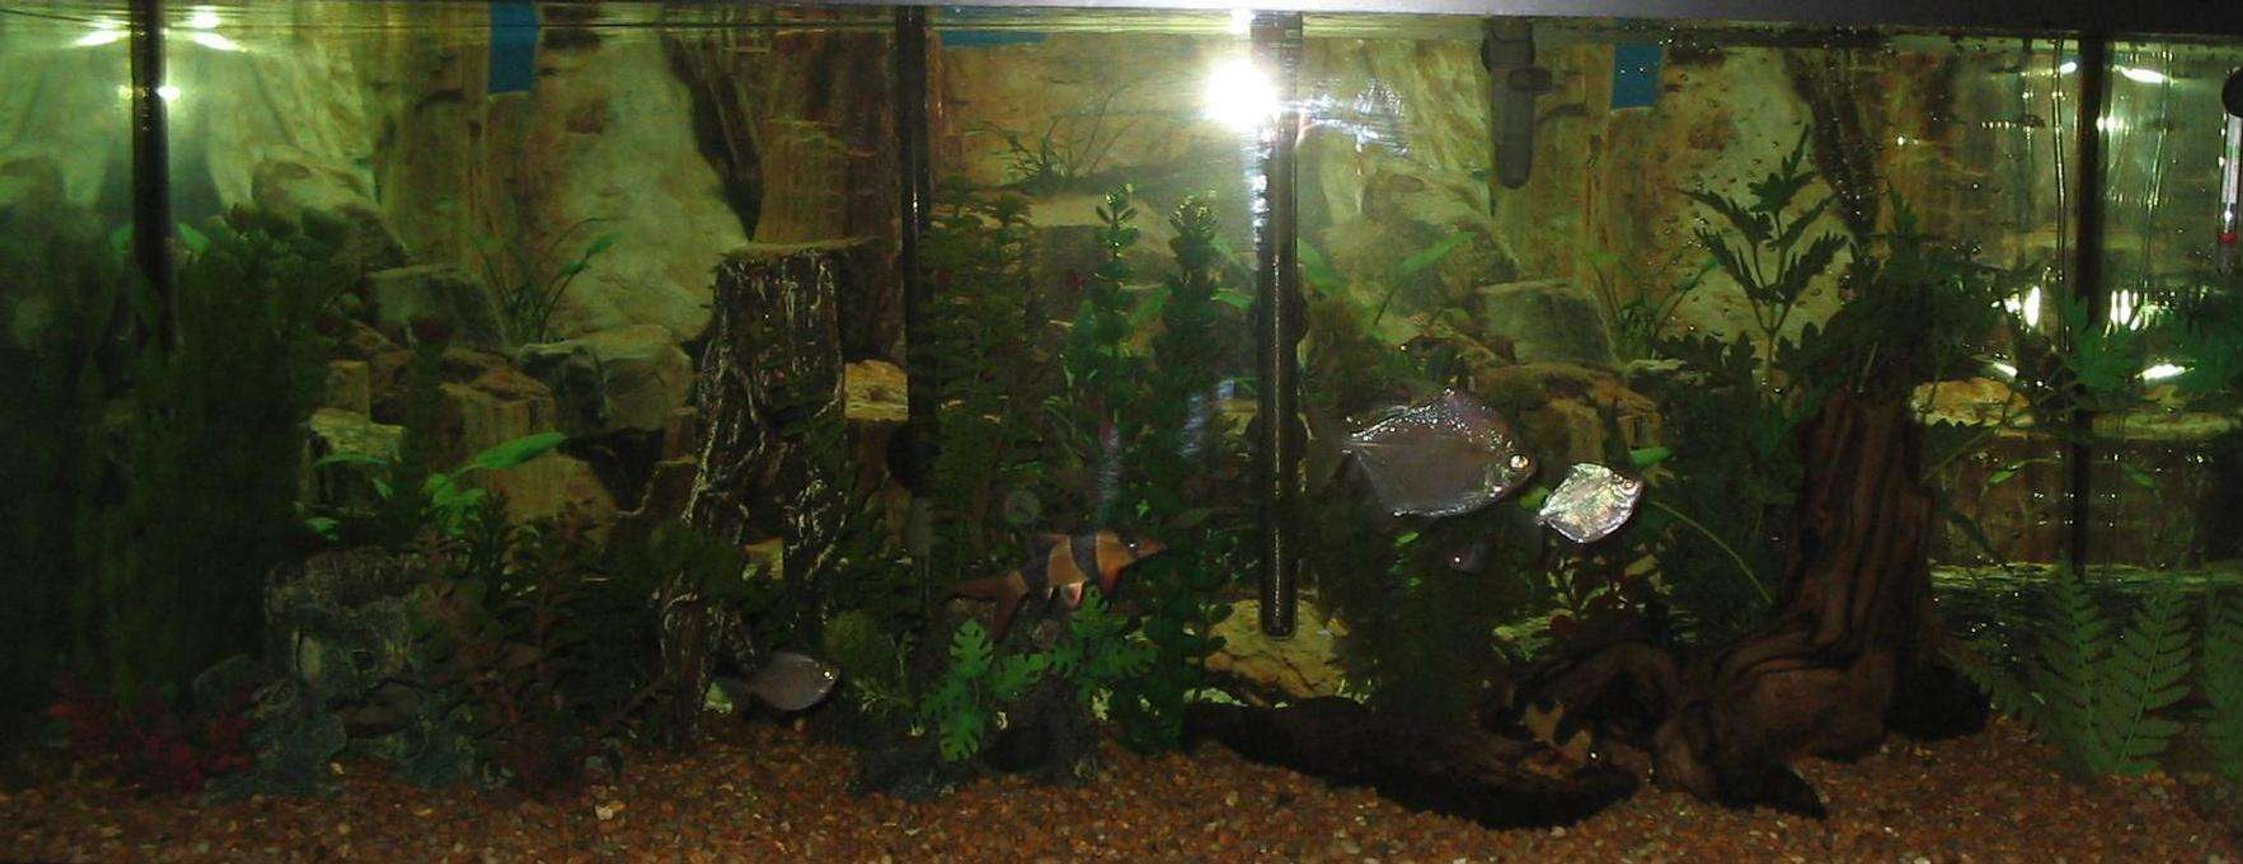 75 gallons freshwater fish tank (mostly fish and non-living decorations) - My Pride and Joy 75 Gallon, Cant get a good pictuer without reflection.